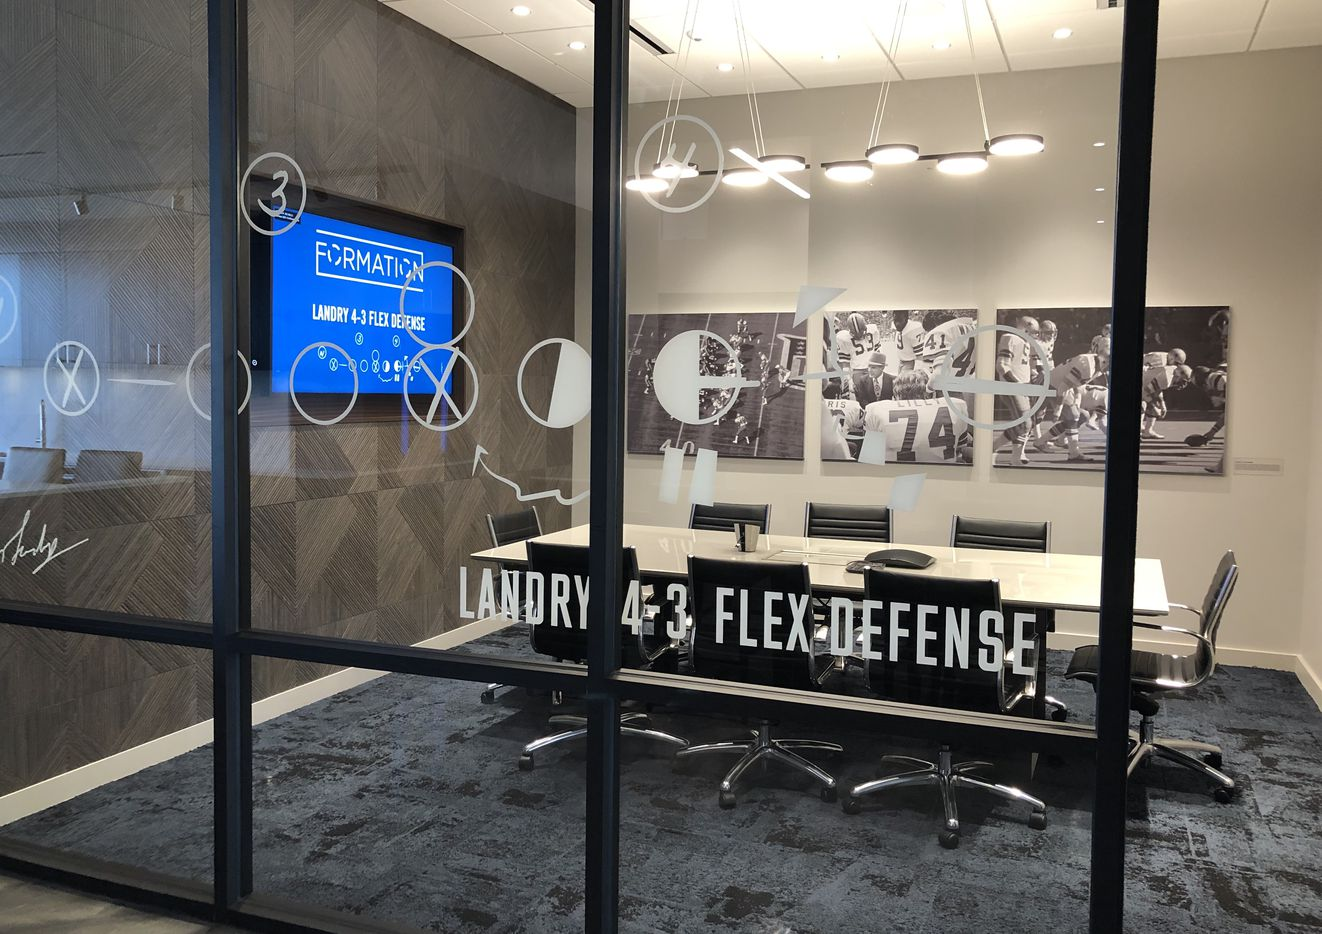 The Dallas Cowboys' new Formation coworking center is opening in Frisco.